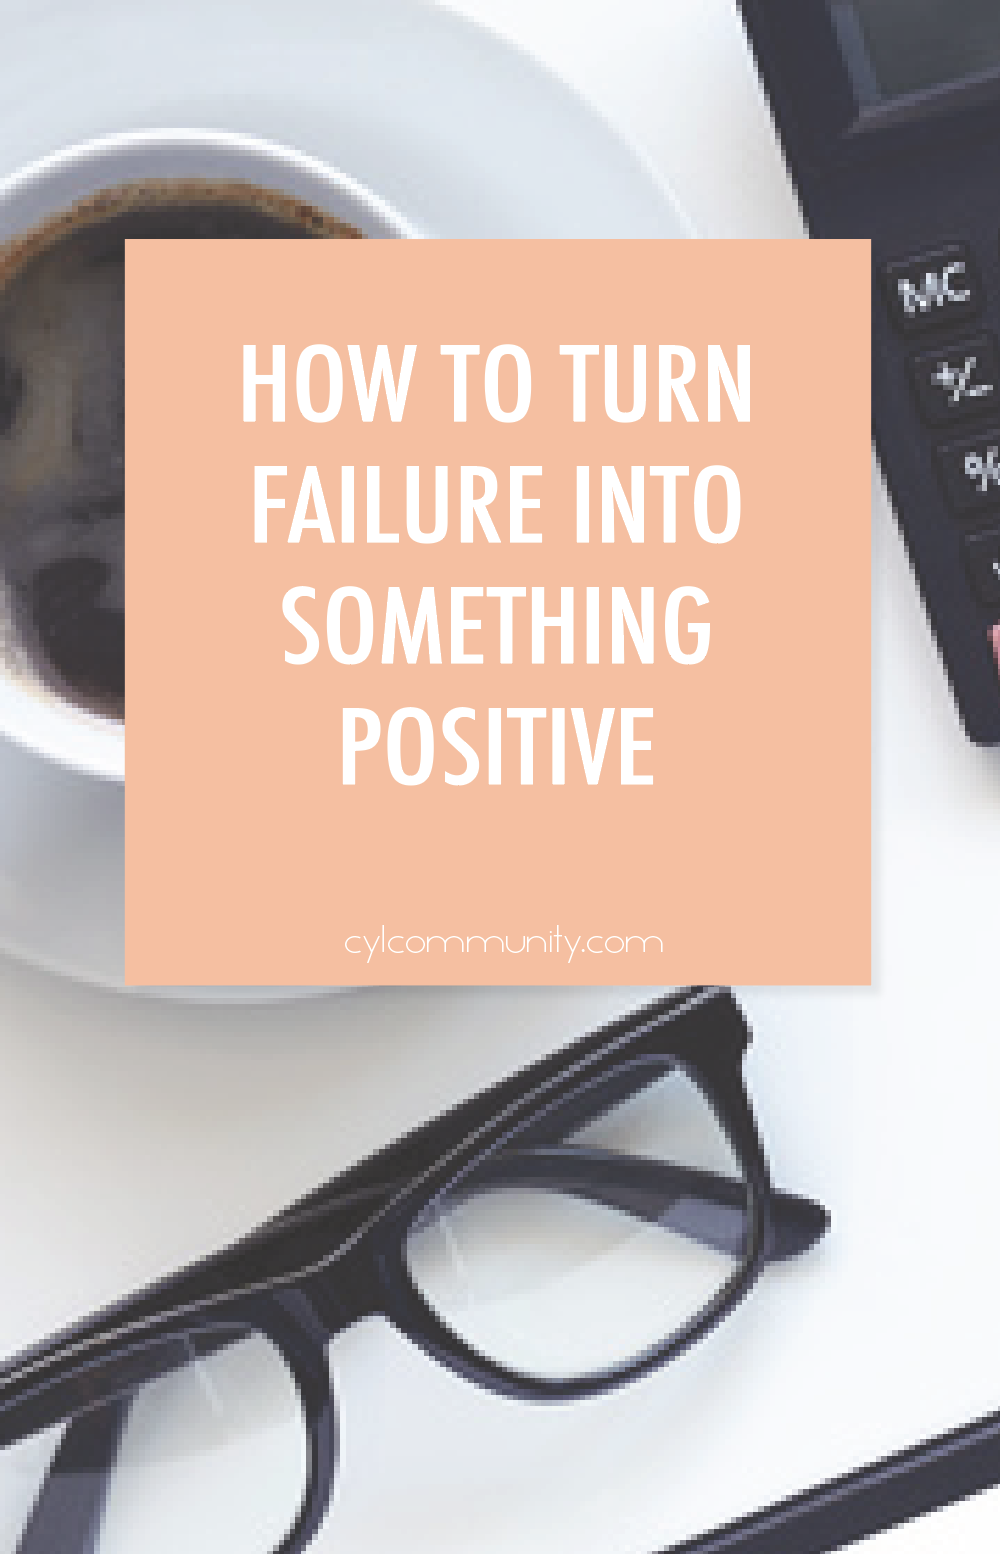 entrepreneur_how_to_turn_failure_positive